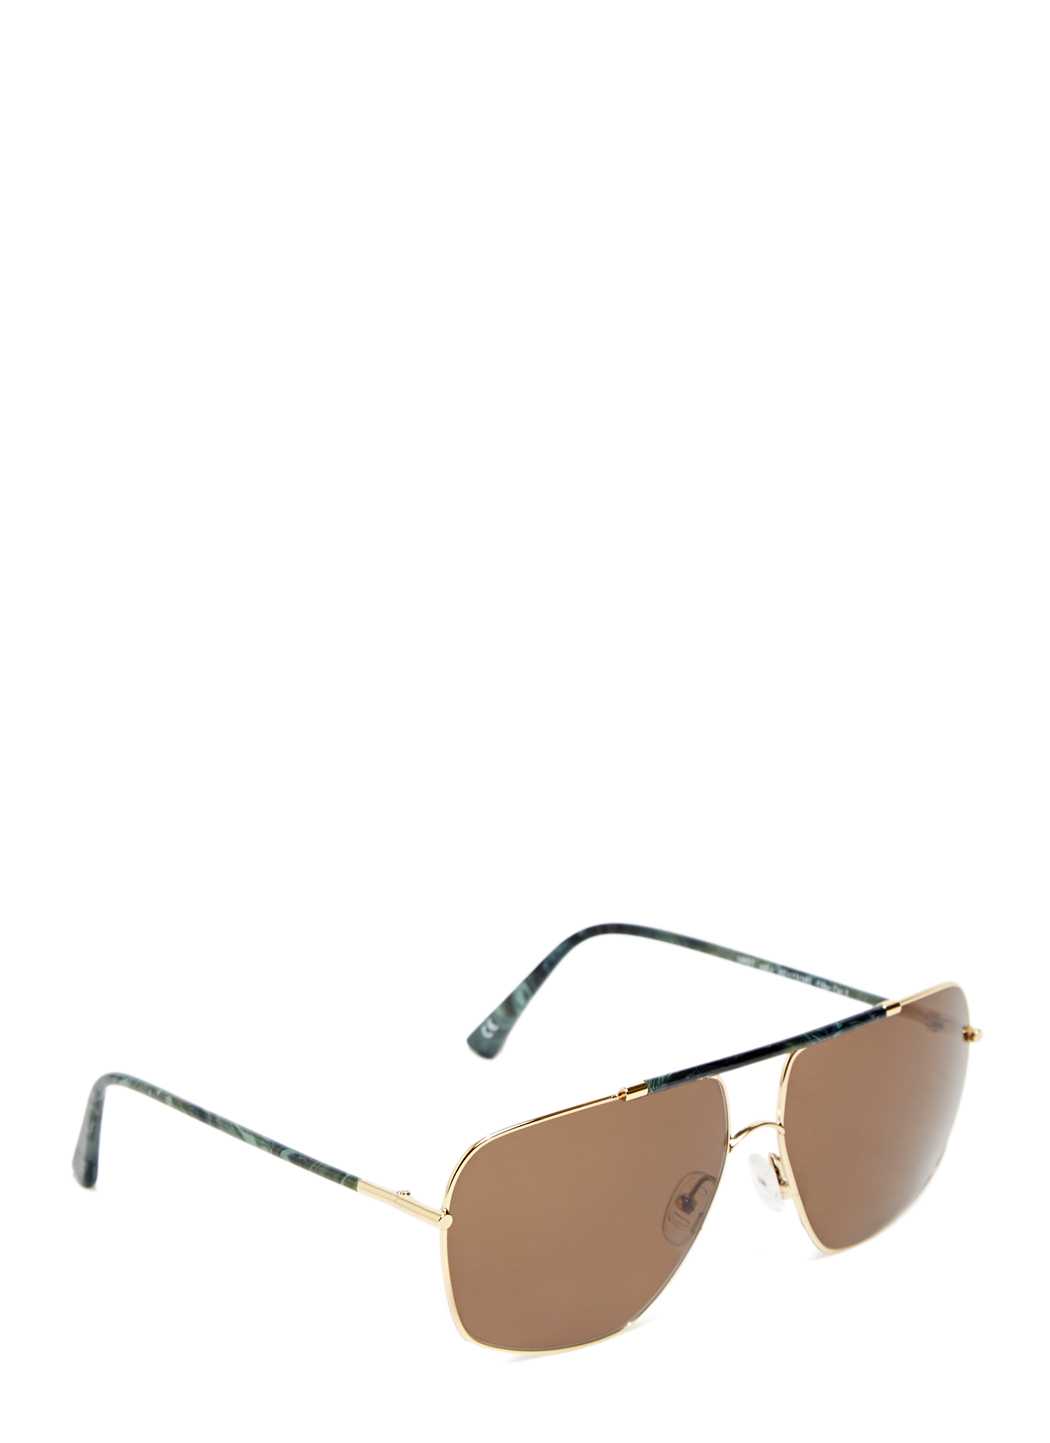 af911b41fdc72d Lyst - Andy Wolf Men s Vast B Sunglasses In Green in Green for Men